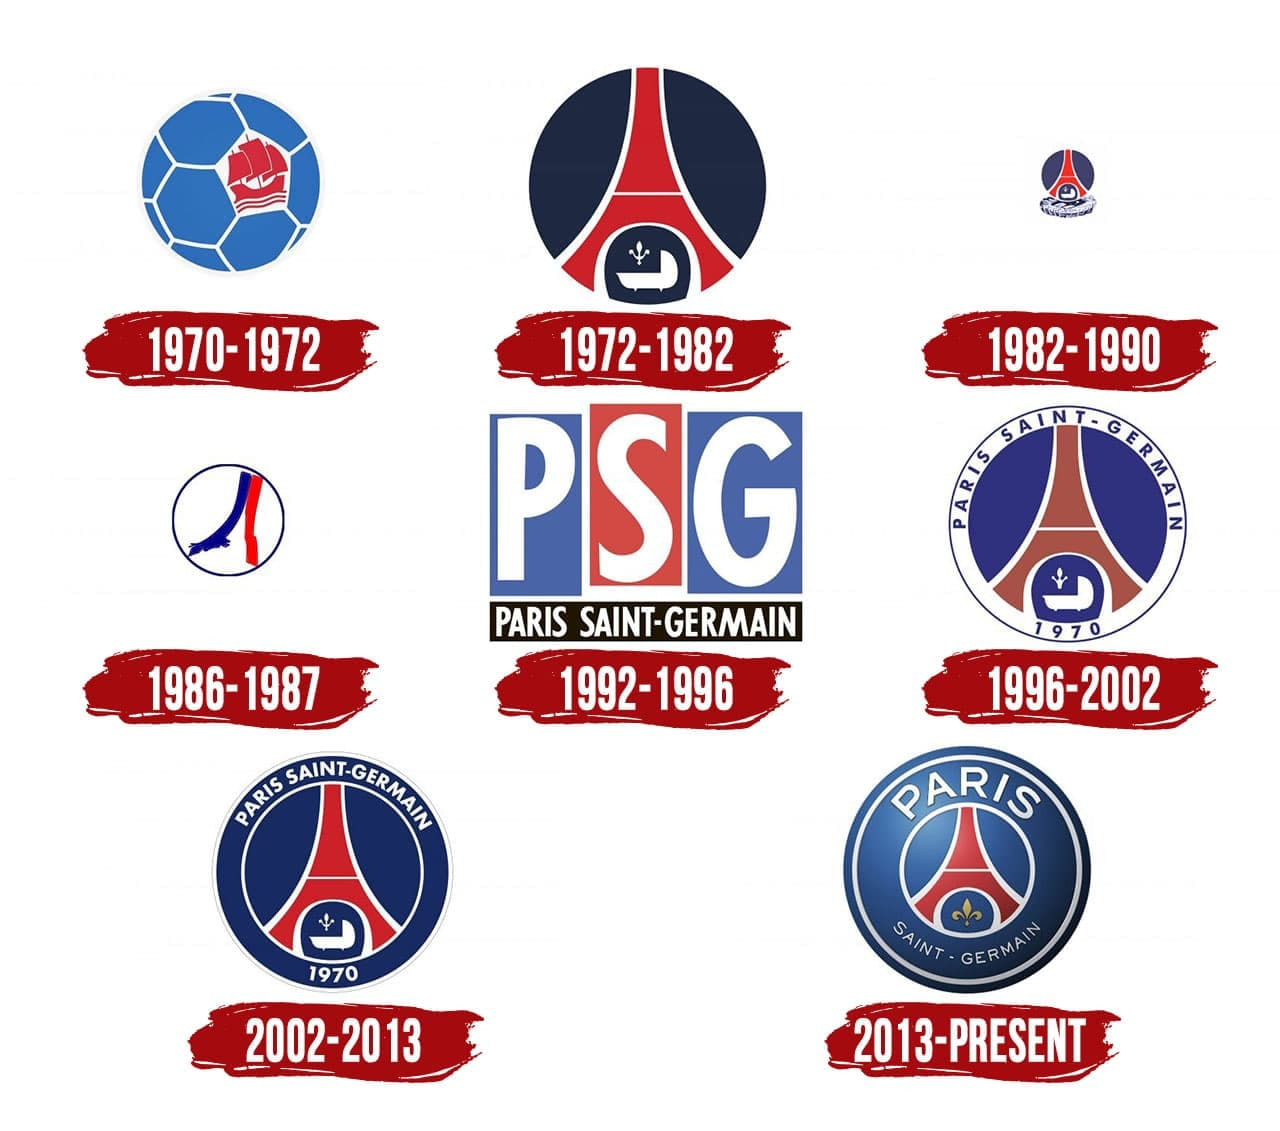 Psg Logo History The Most Famous Brands And Company Logos In The World